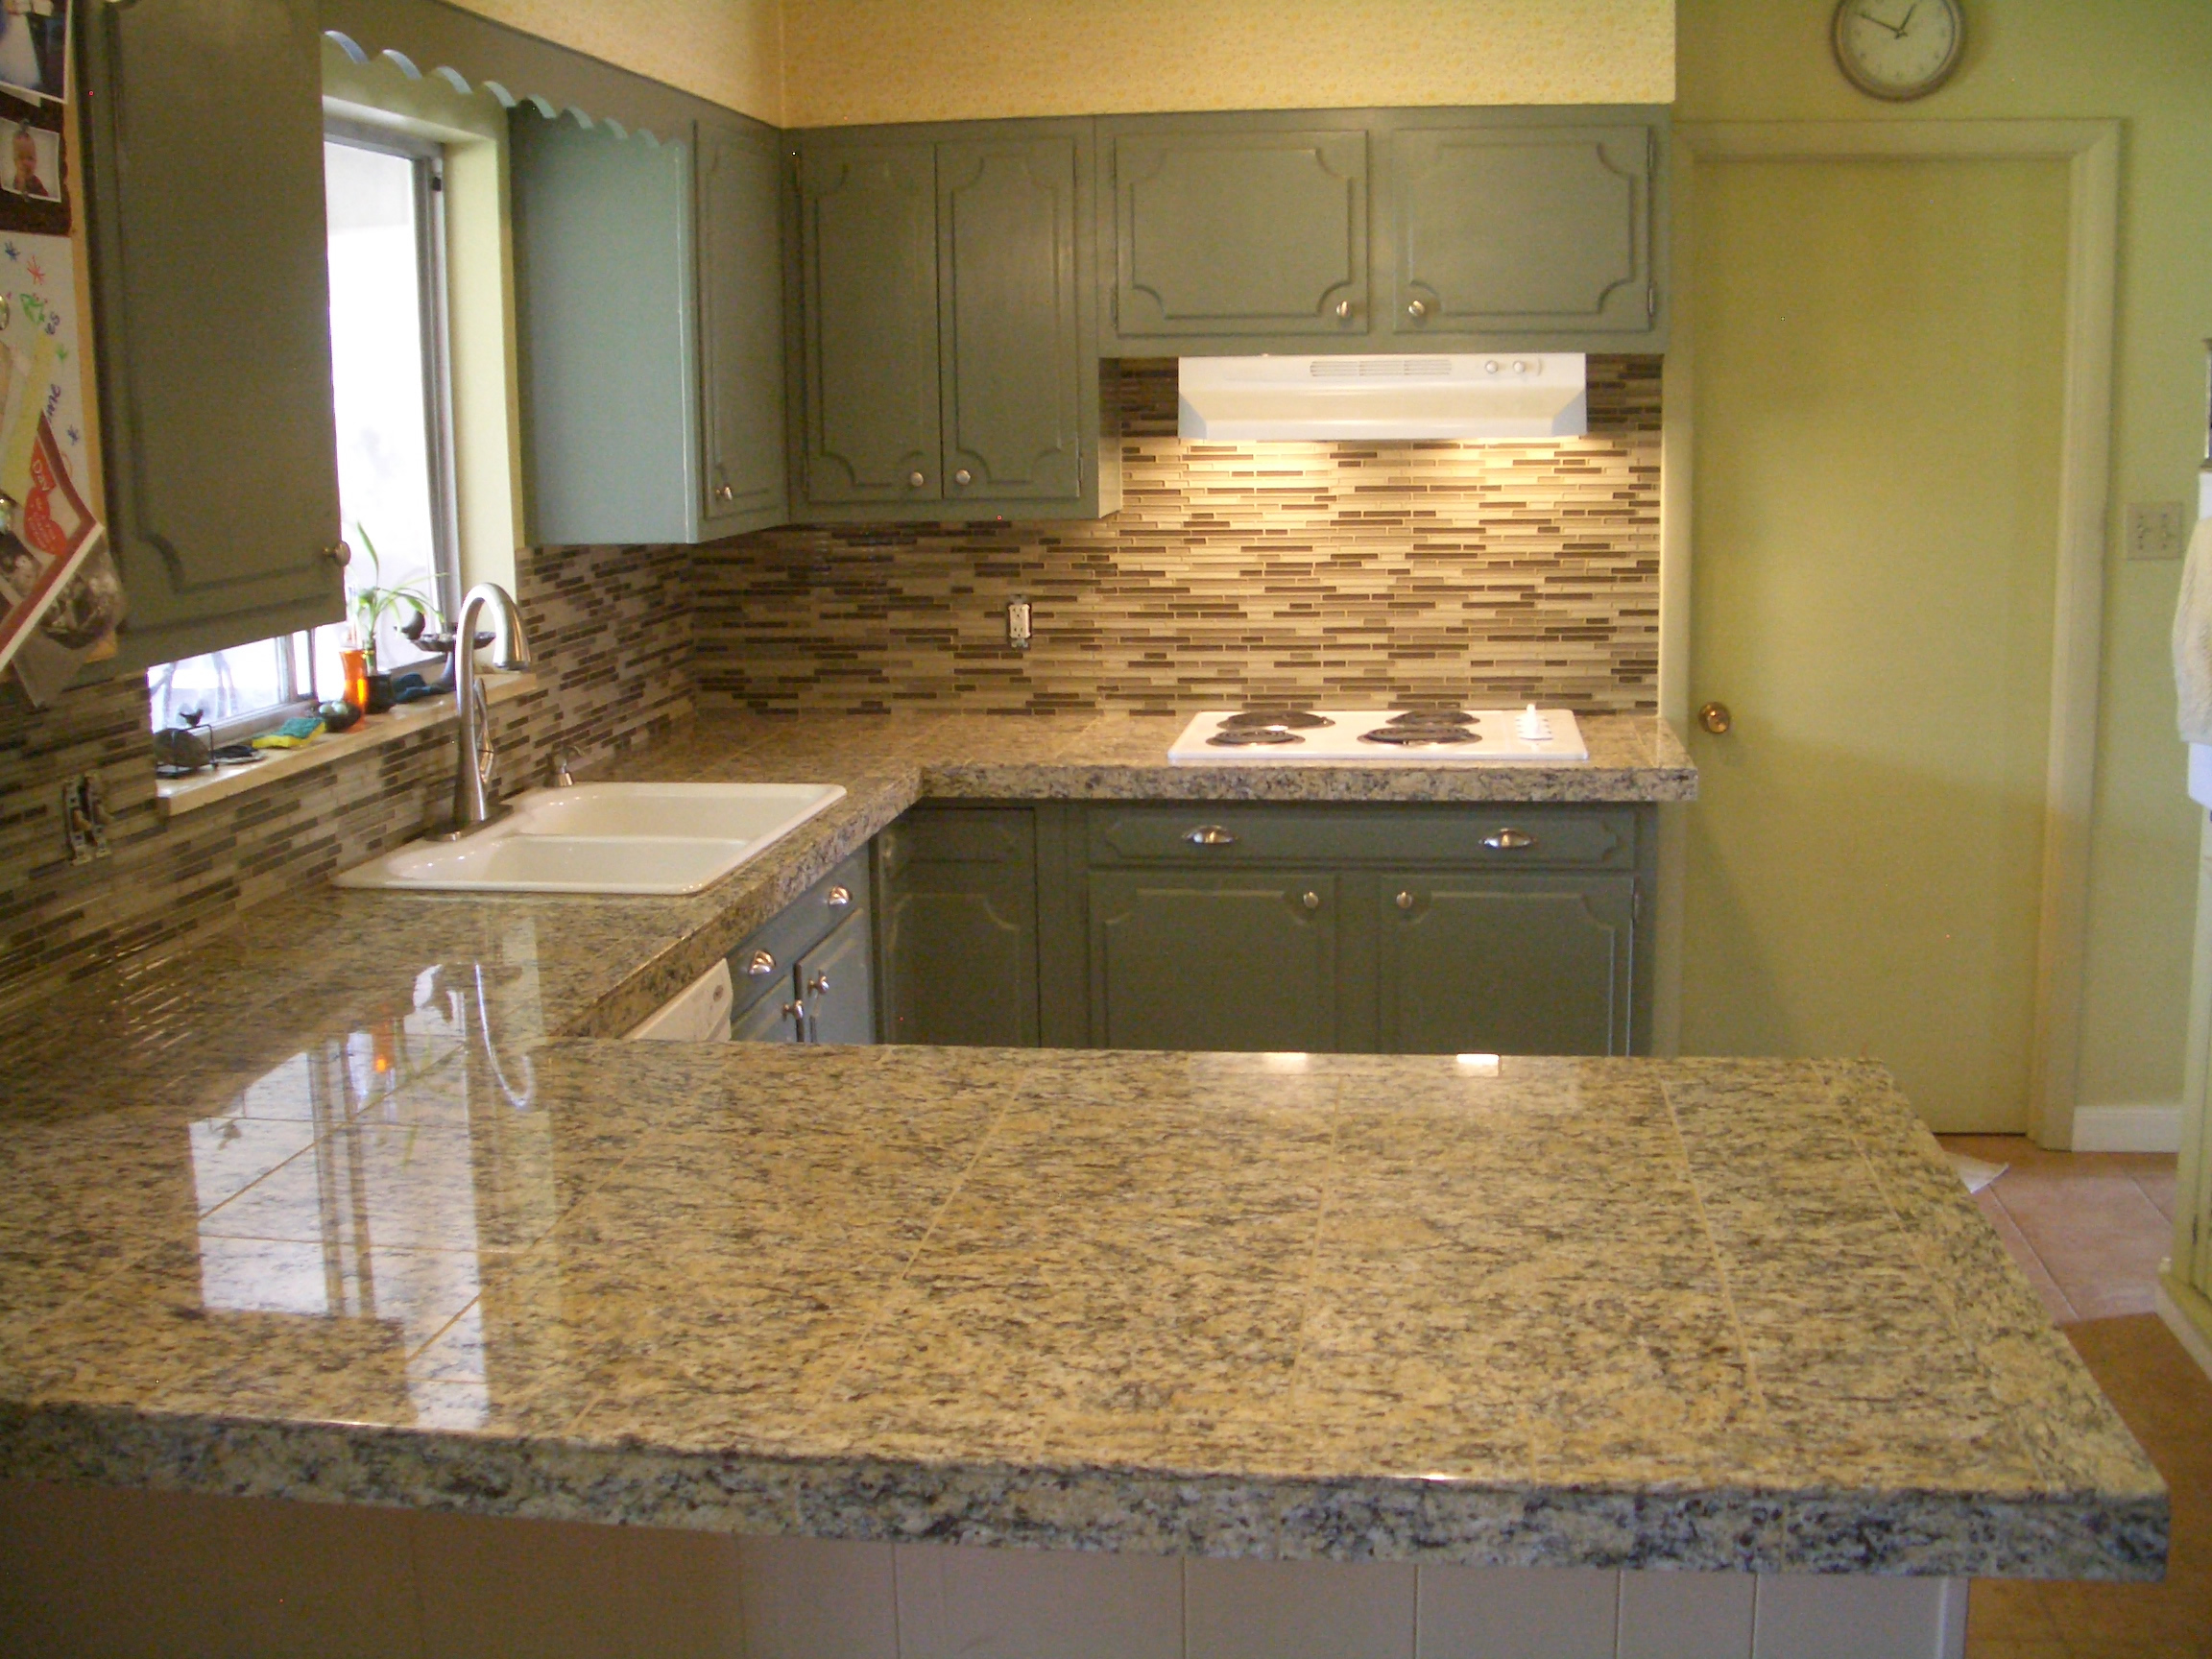 Glass tile kitchen backsplash special only 899 - Backsplash design ...